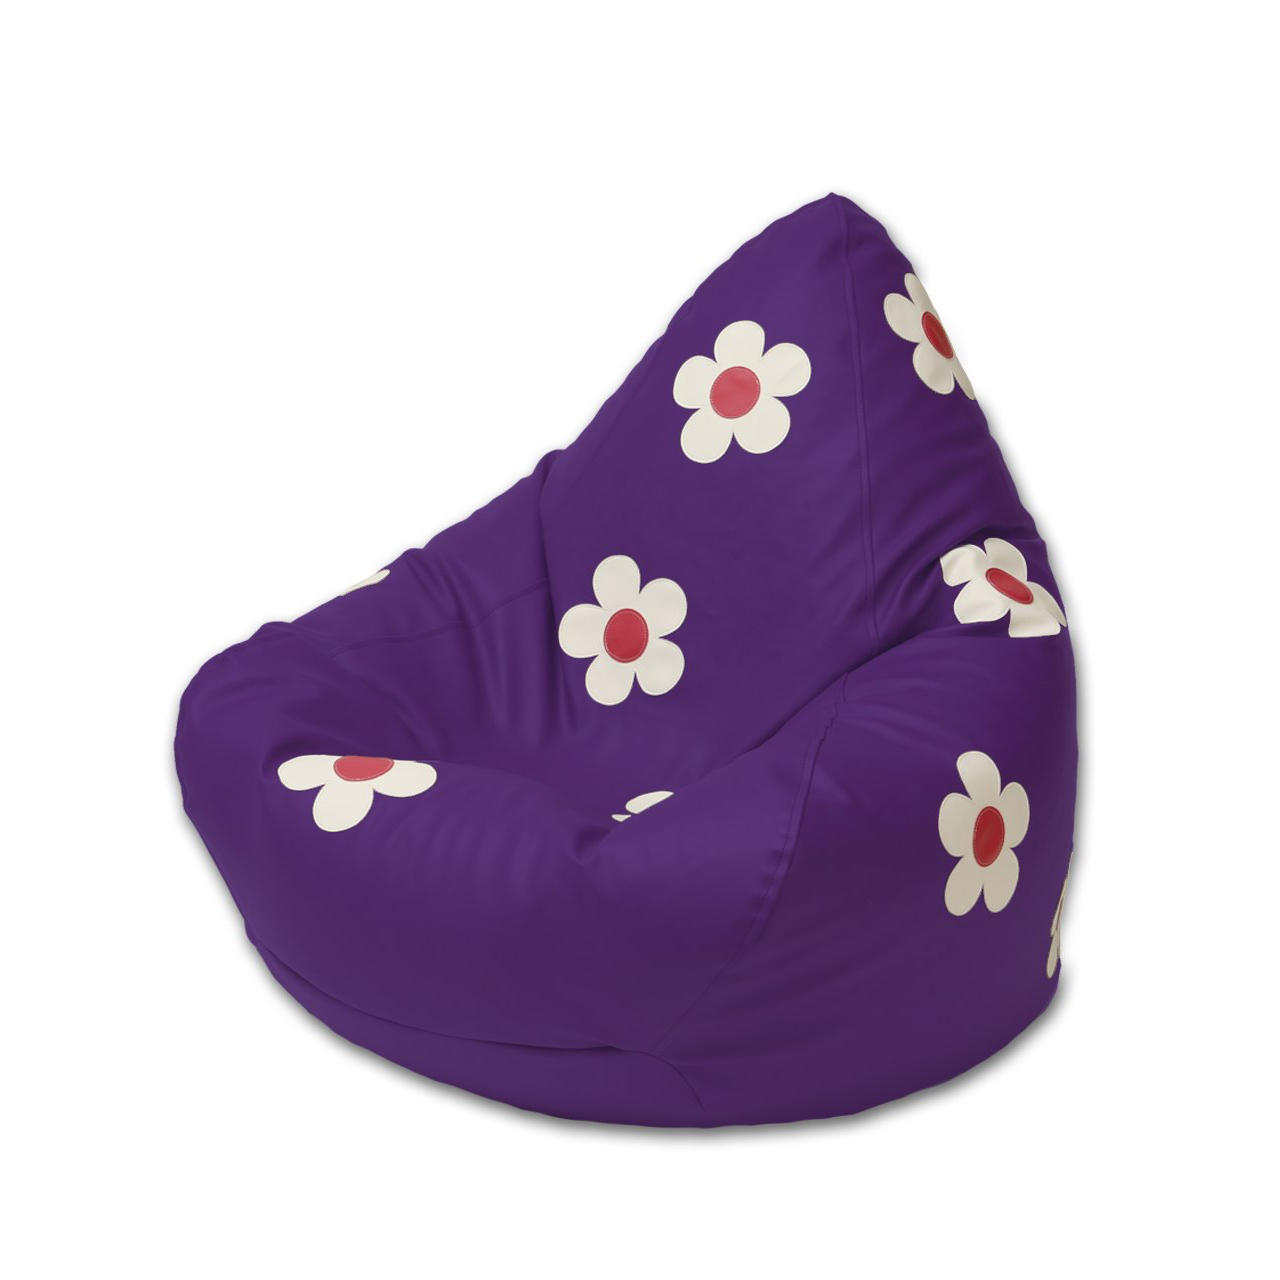 Daisy Bean Bag in grape